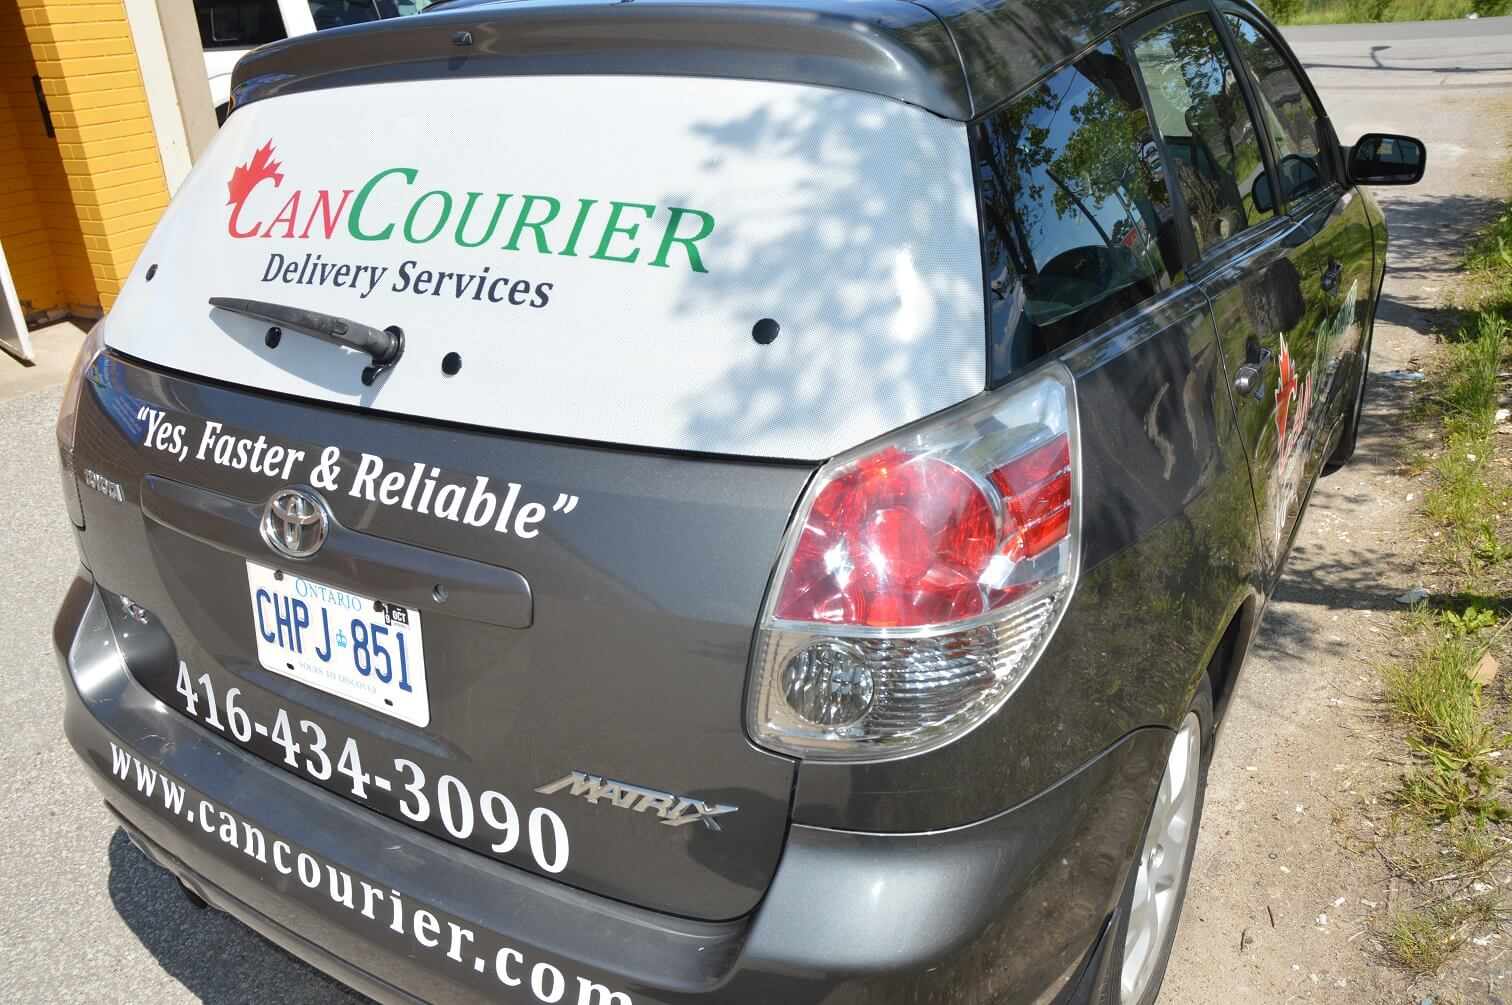 Car Decal | Can Courier- Back View